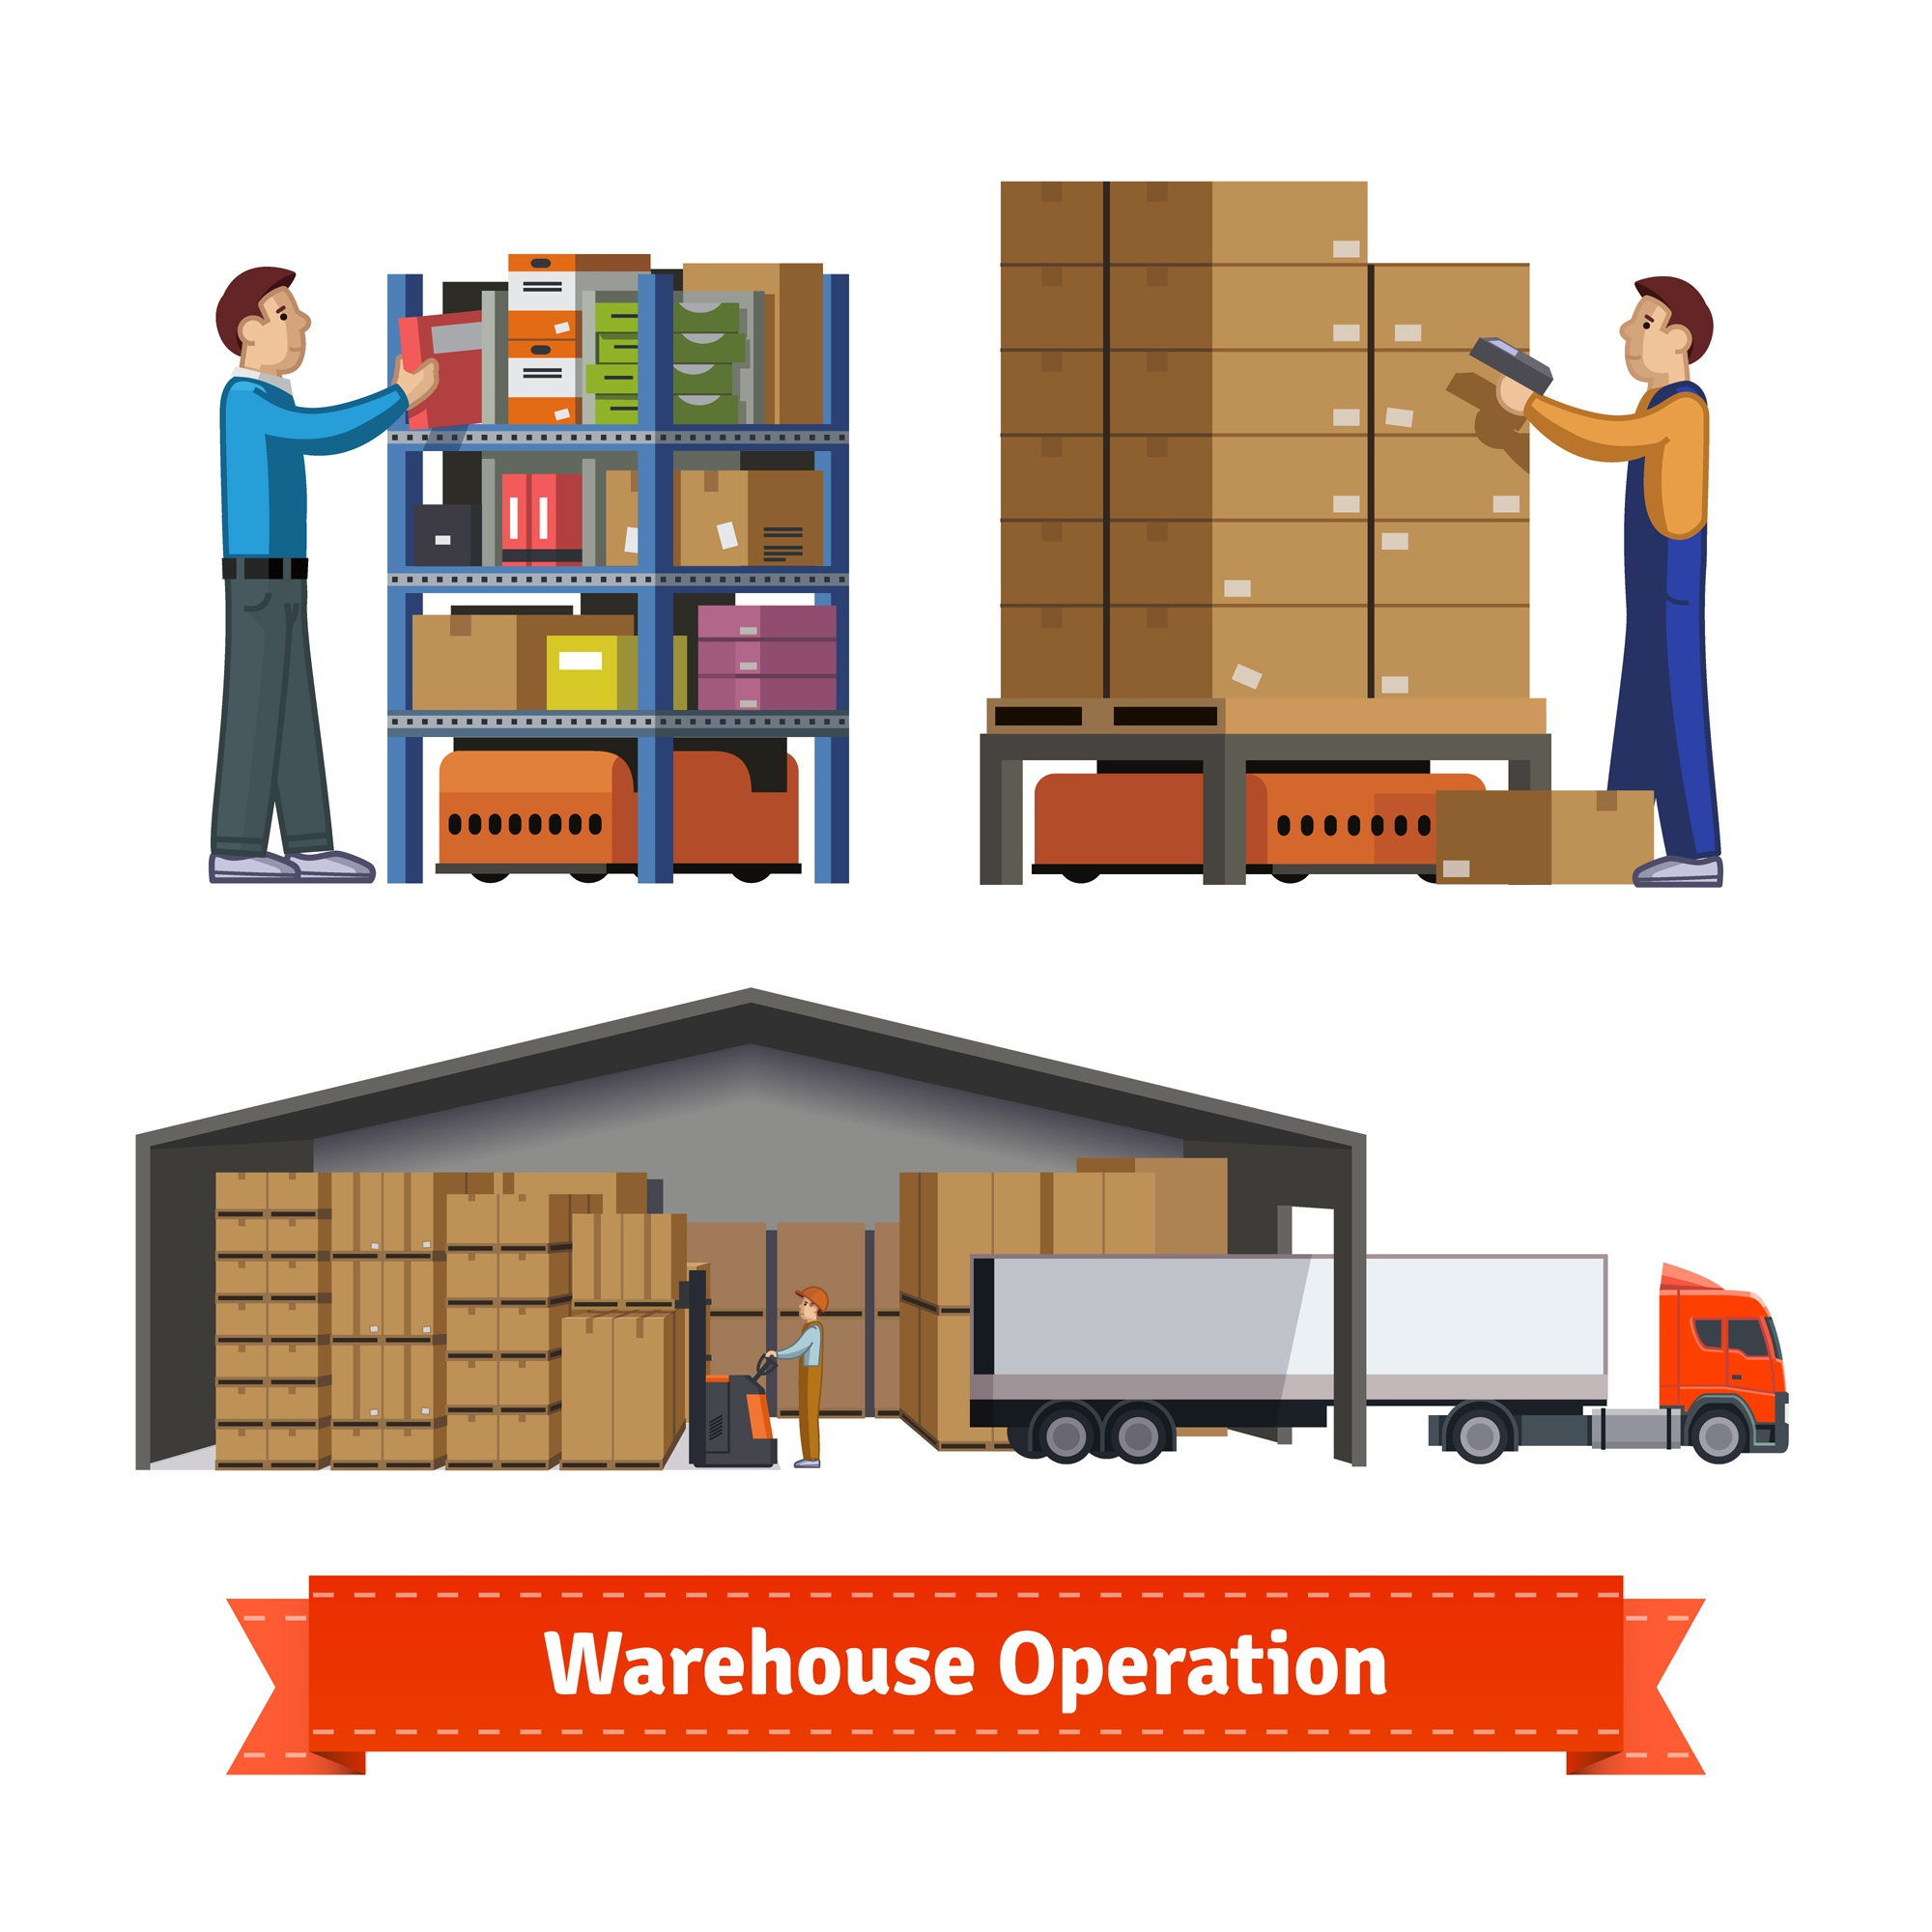 Warehouse operations, workers and robots